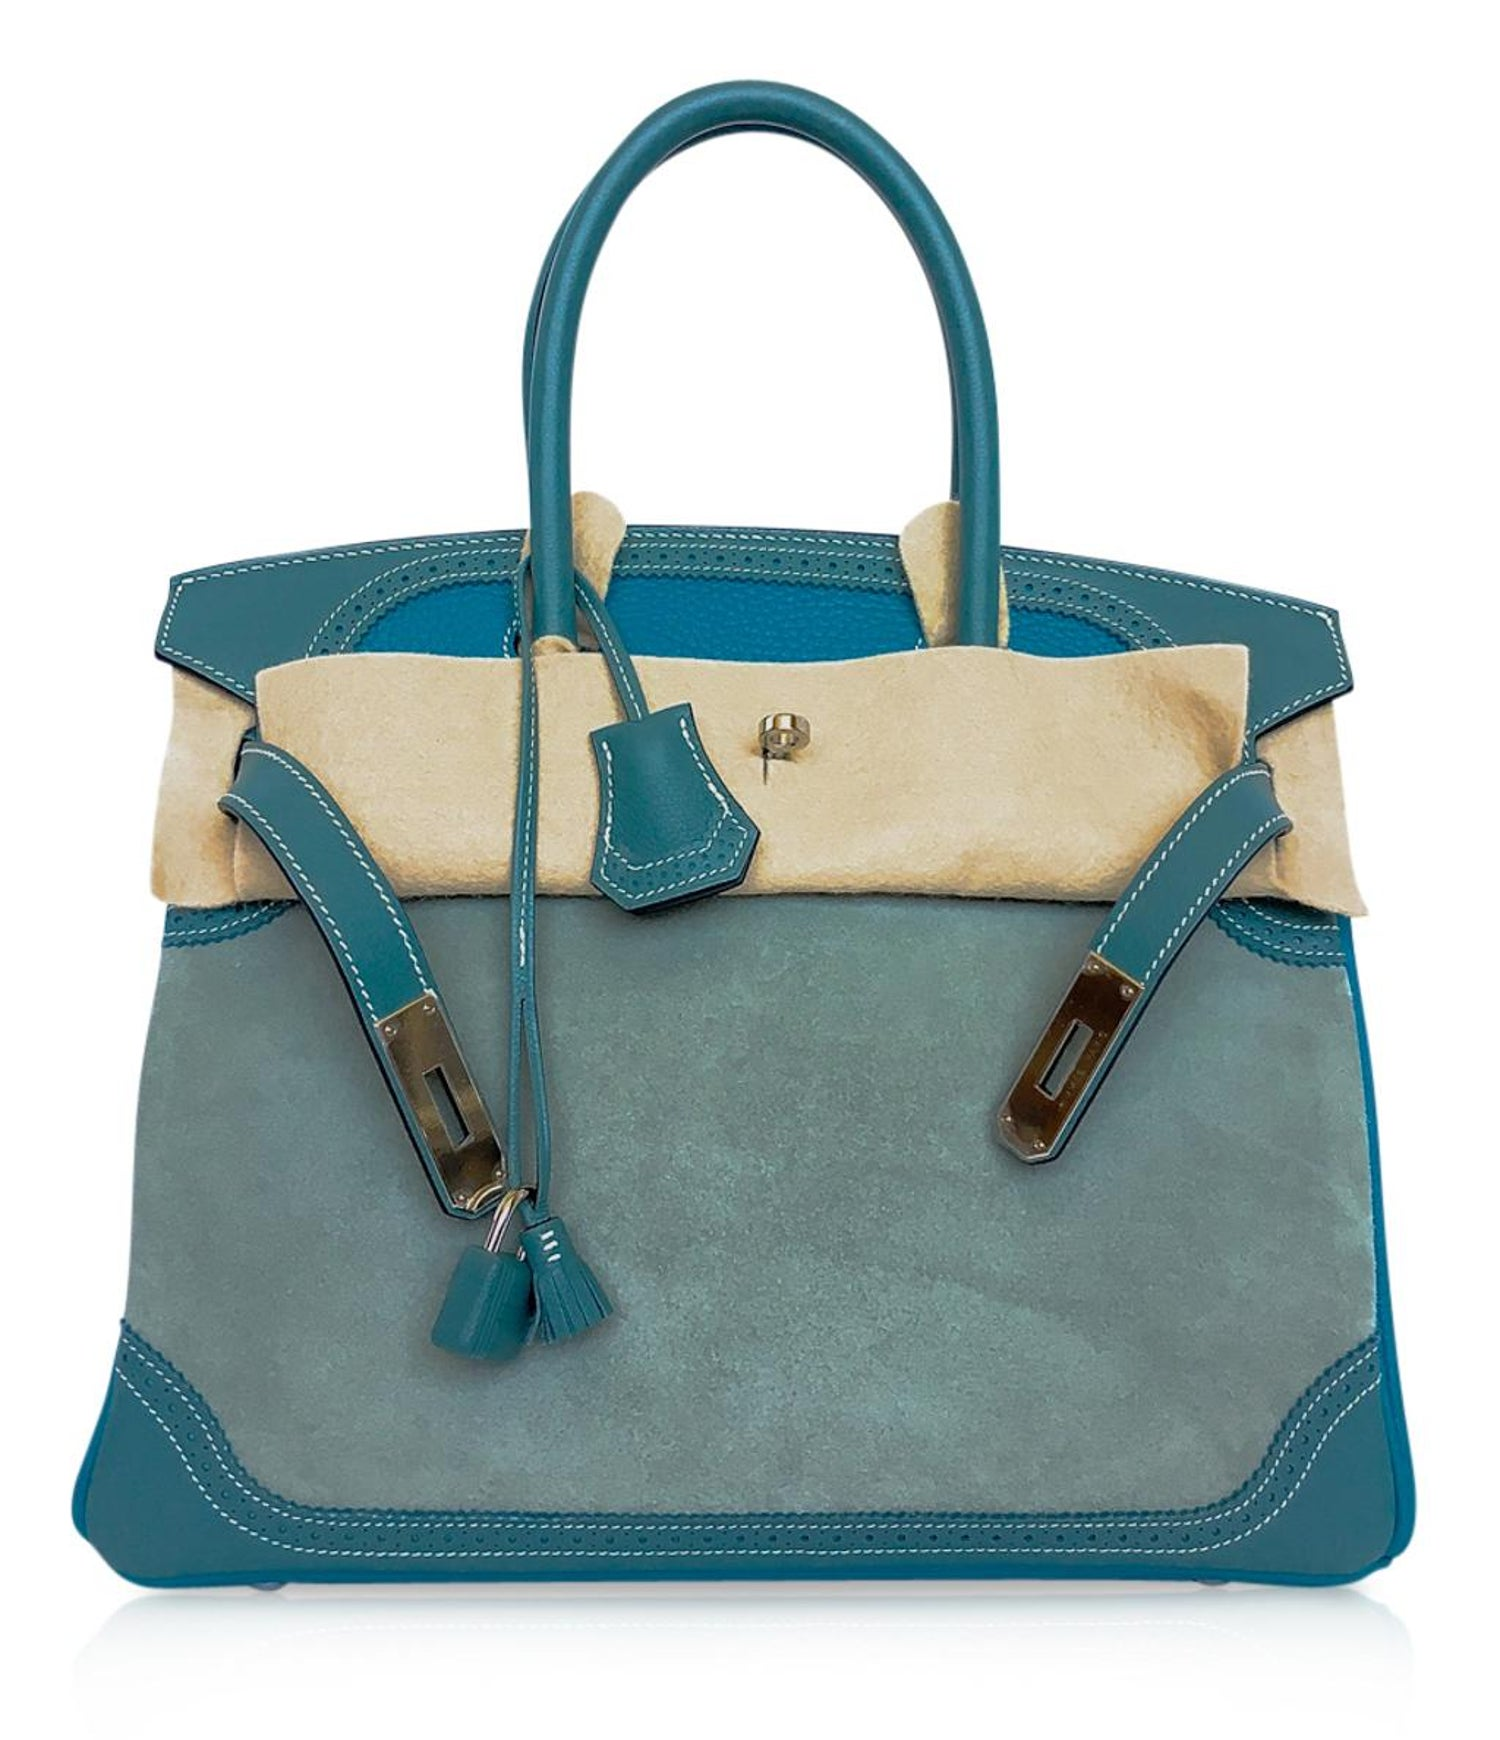 ec1b737c83 Hermes Birkin 30 Bag Grizzly Doblis Ghillies Ciel Turquoise Limited Edition  New at 1stdibs